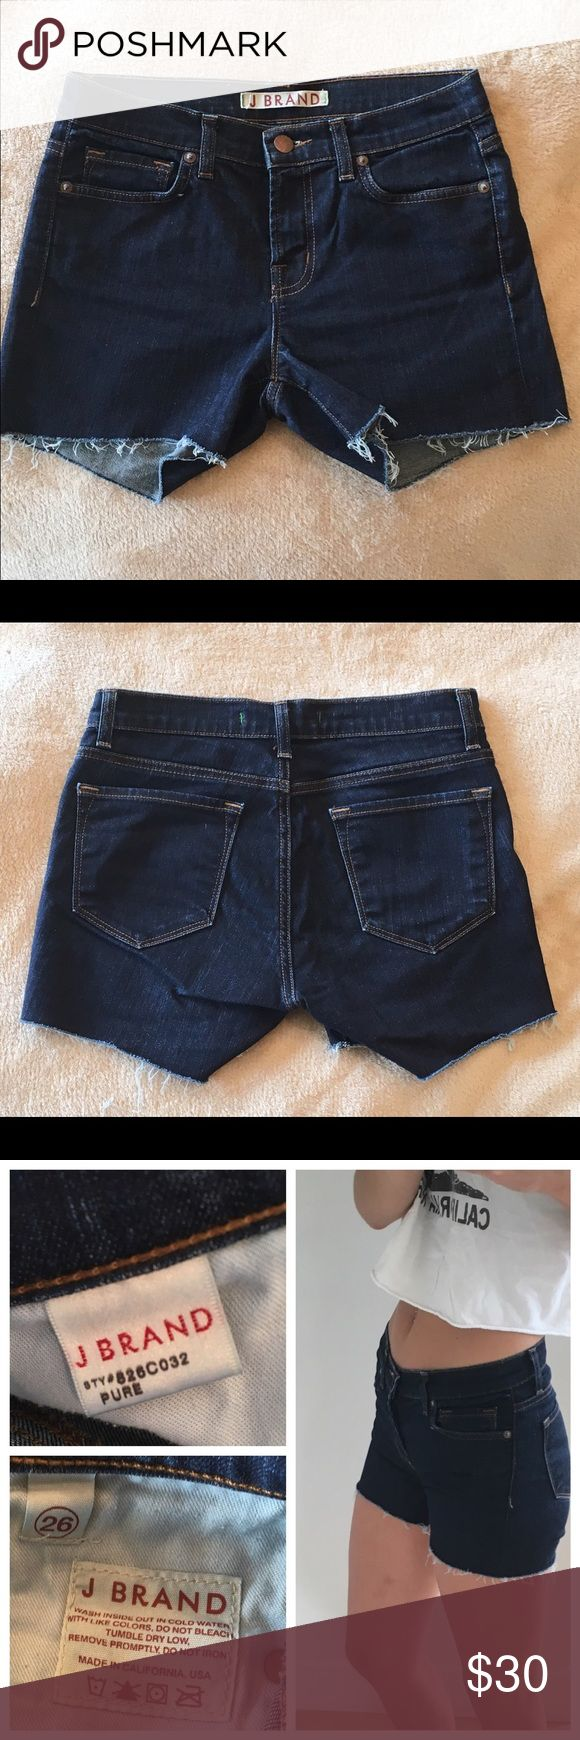 """J Brand Low Rise Cut Off Shorts J Brand Pure Skinny 826C032 Low Rise Womens Jeans. Size 26. Color/wash: Pure. Made into cut off shorts. Can be worn cuffed or uncuffed. 5-pocket styling. Single-button closure and zip fly. Super comfortable. Material: 94% Cotton, 5% Polyester, 1% Spandex — Style #826C032 — Cut #5037. Approx measurements: Rise: 8.25-8.5"""" & Inseam: 3.5"""" Let me know if you have any questions. J Brand Shorts Jean Shorts"""